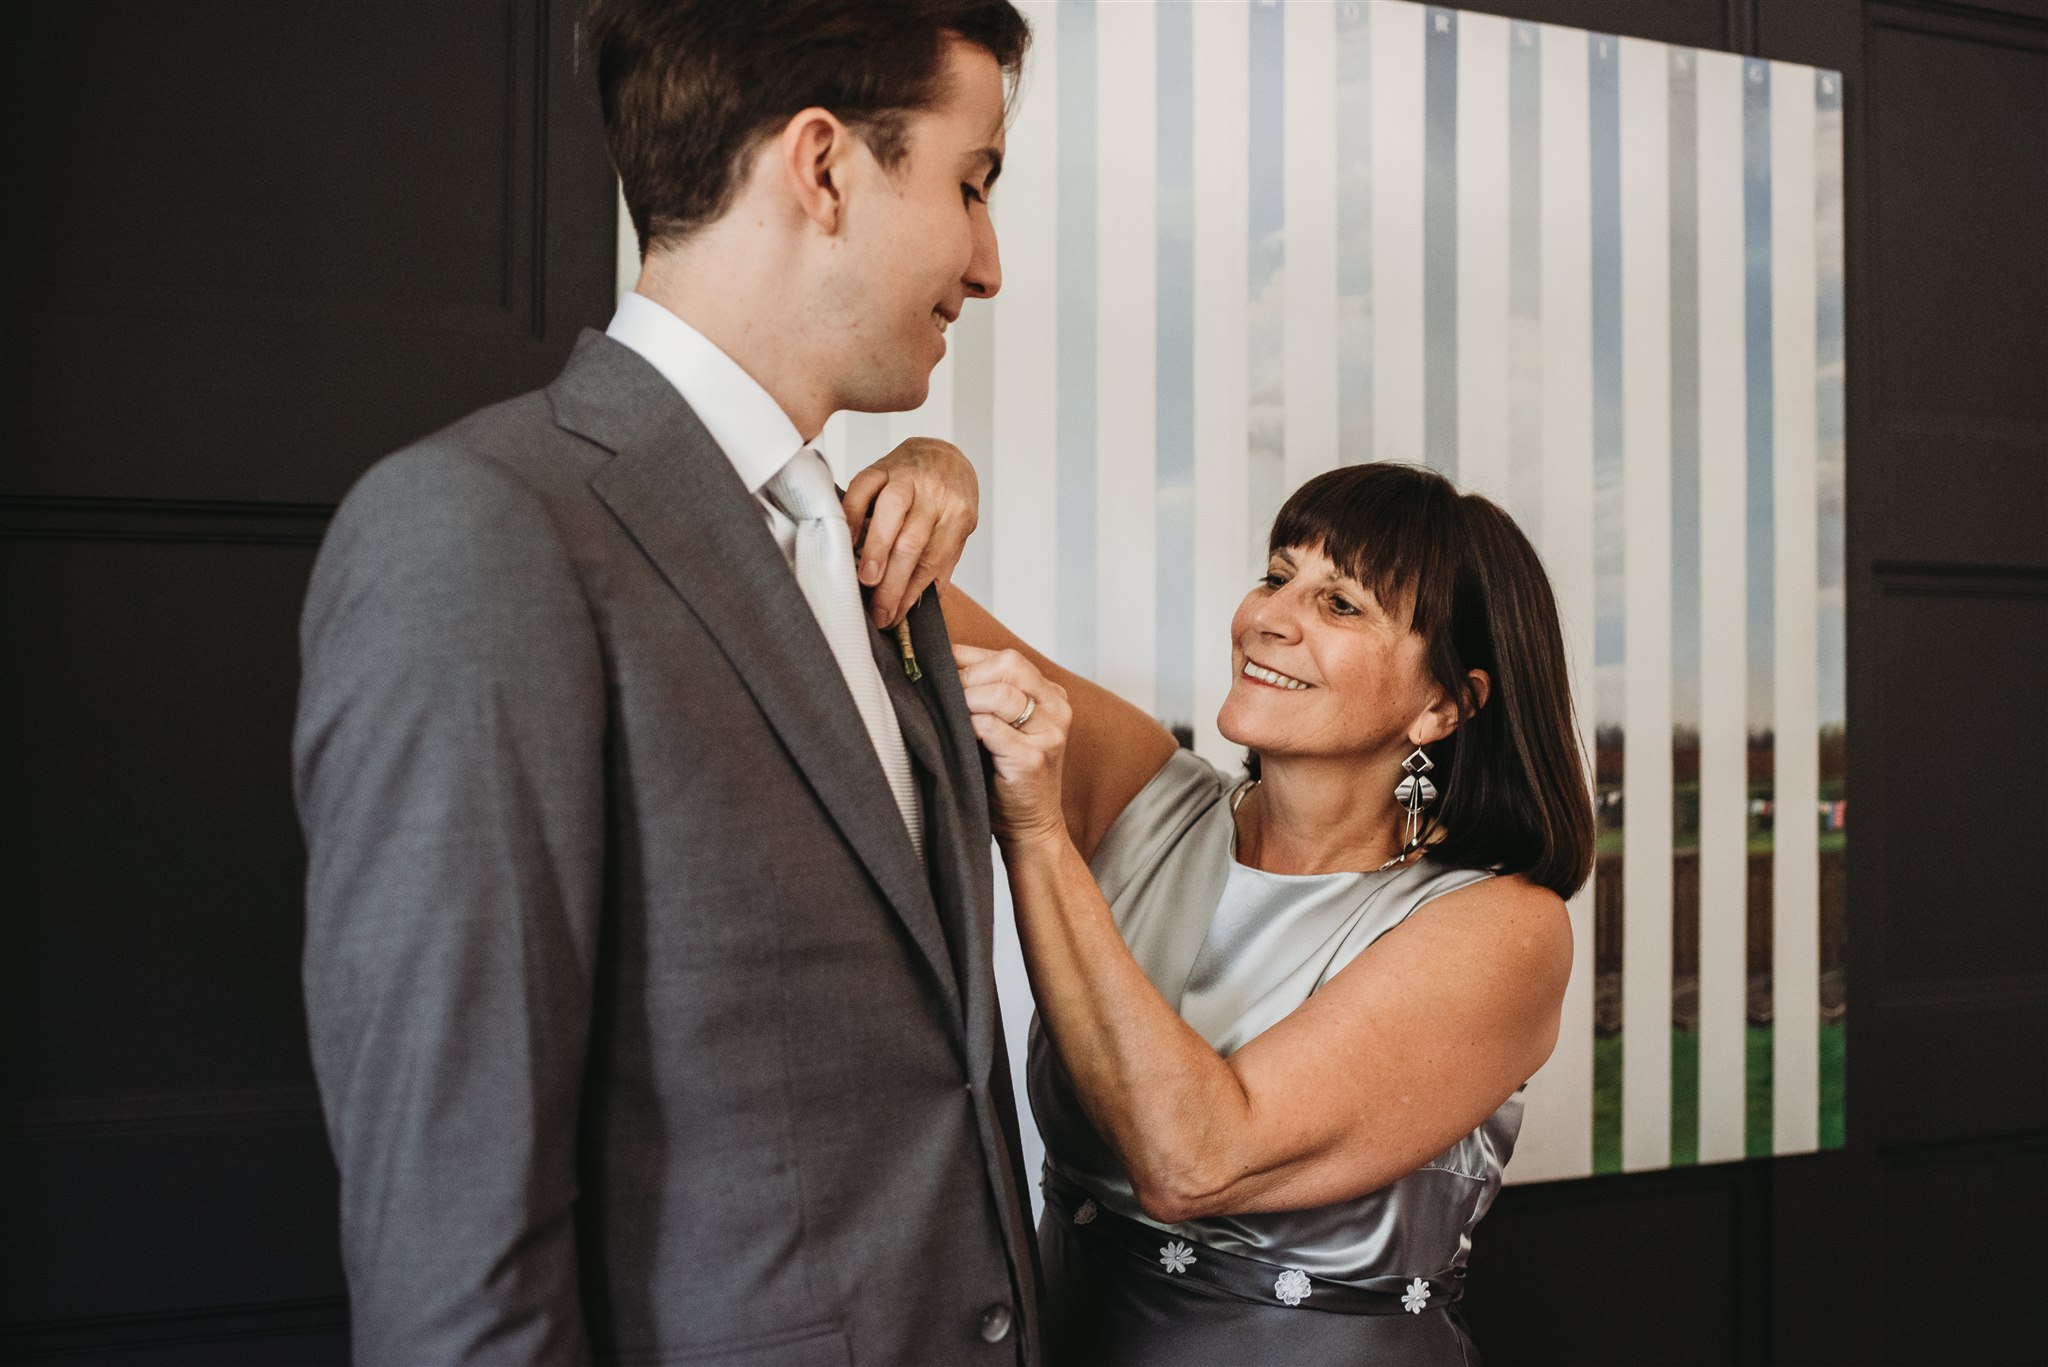 grooms mom putting his boutonniere on